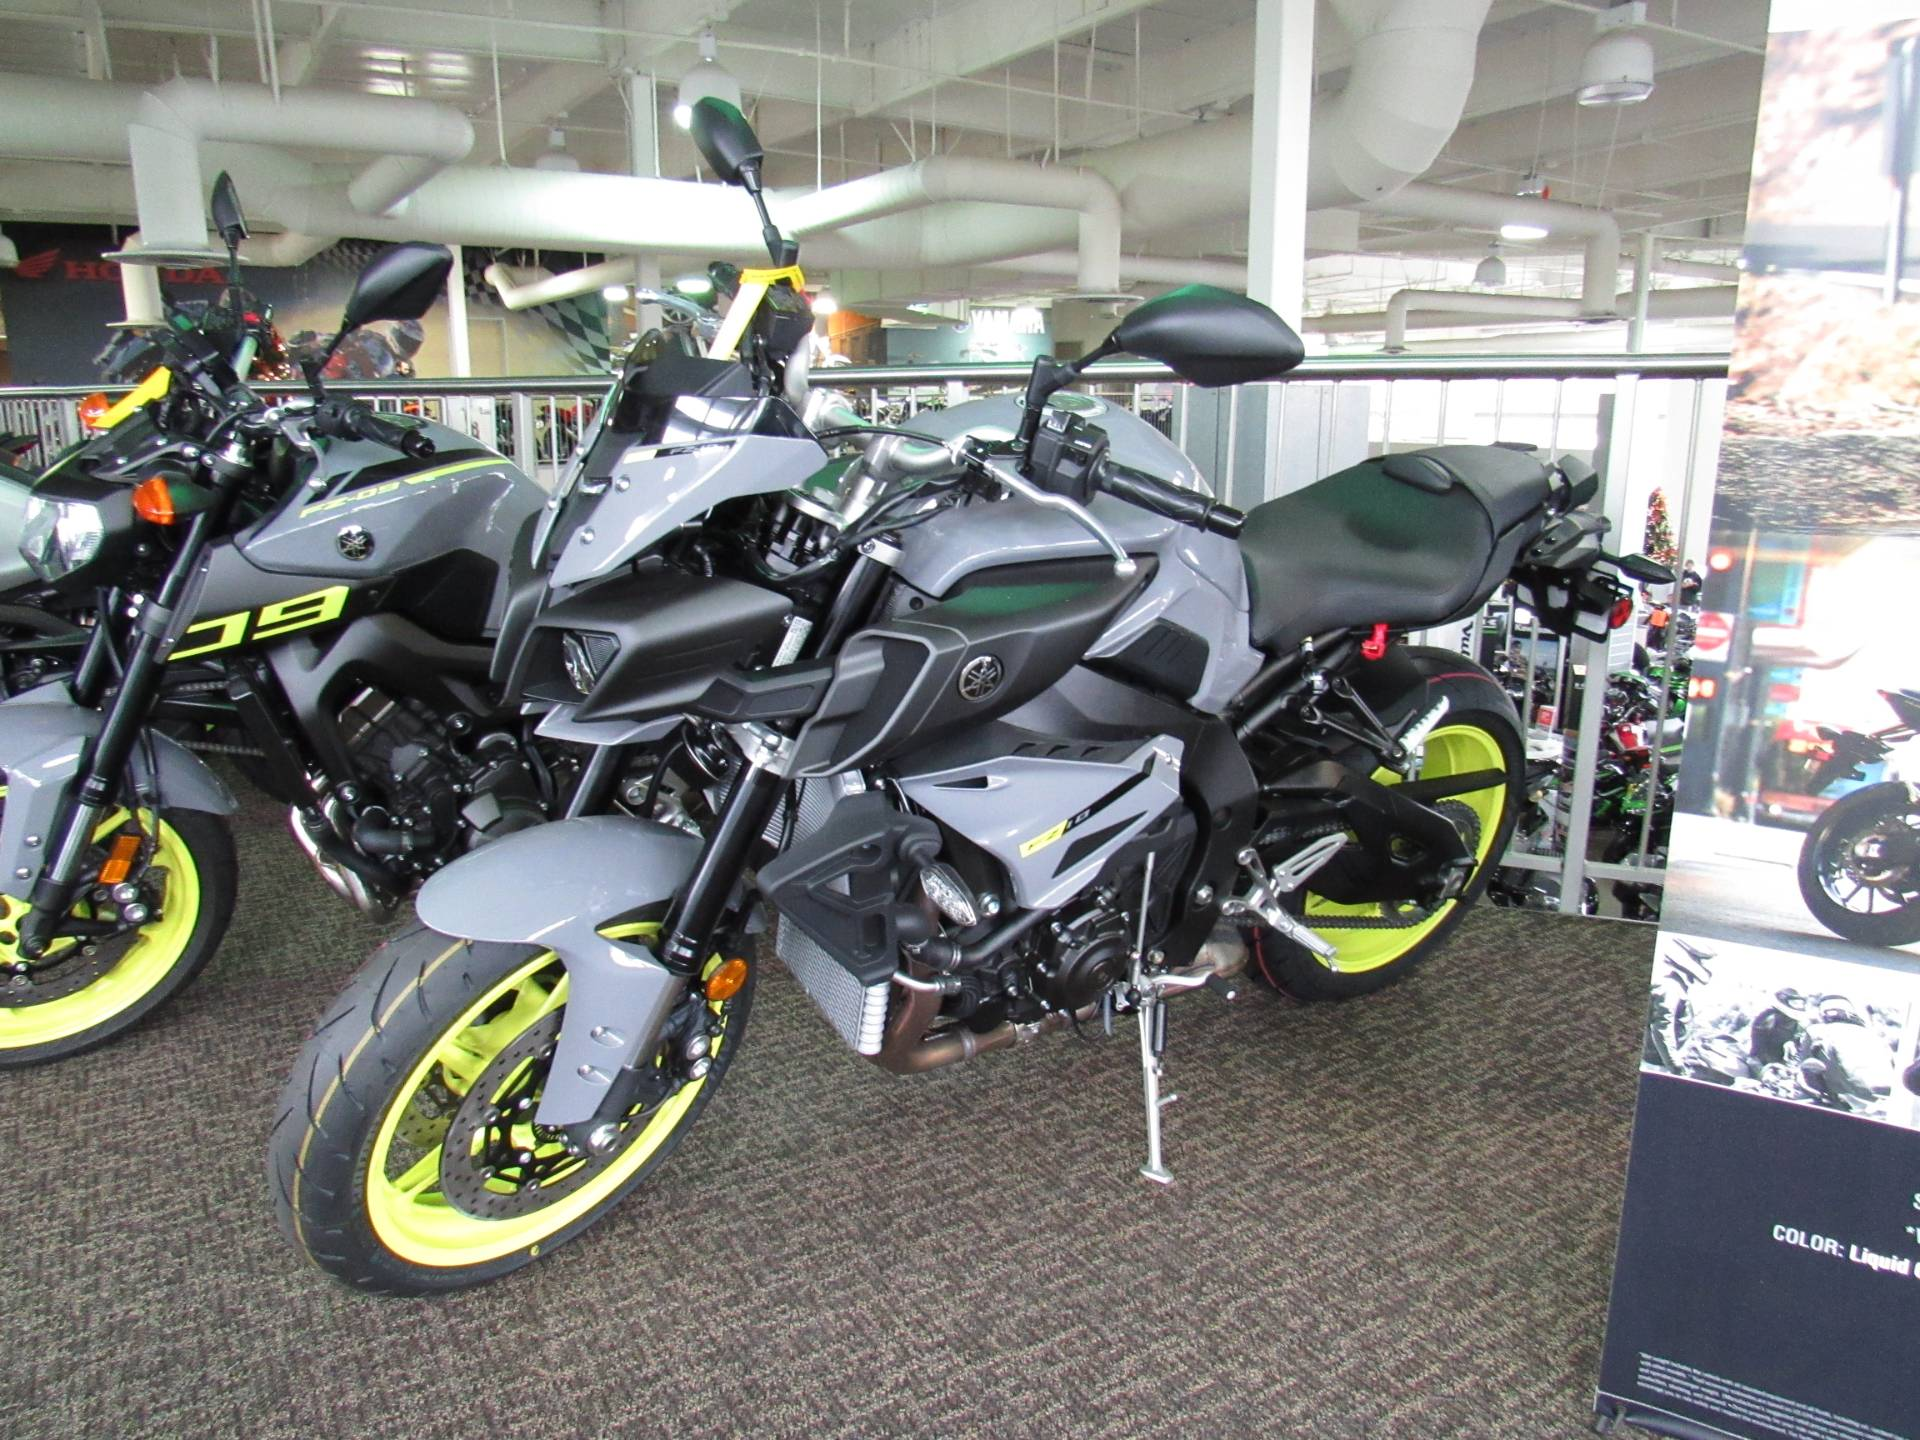 2017 Yamaha FZ-10 for sale 9604